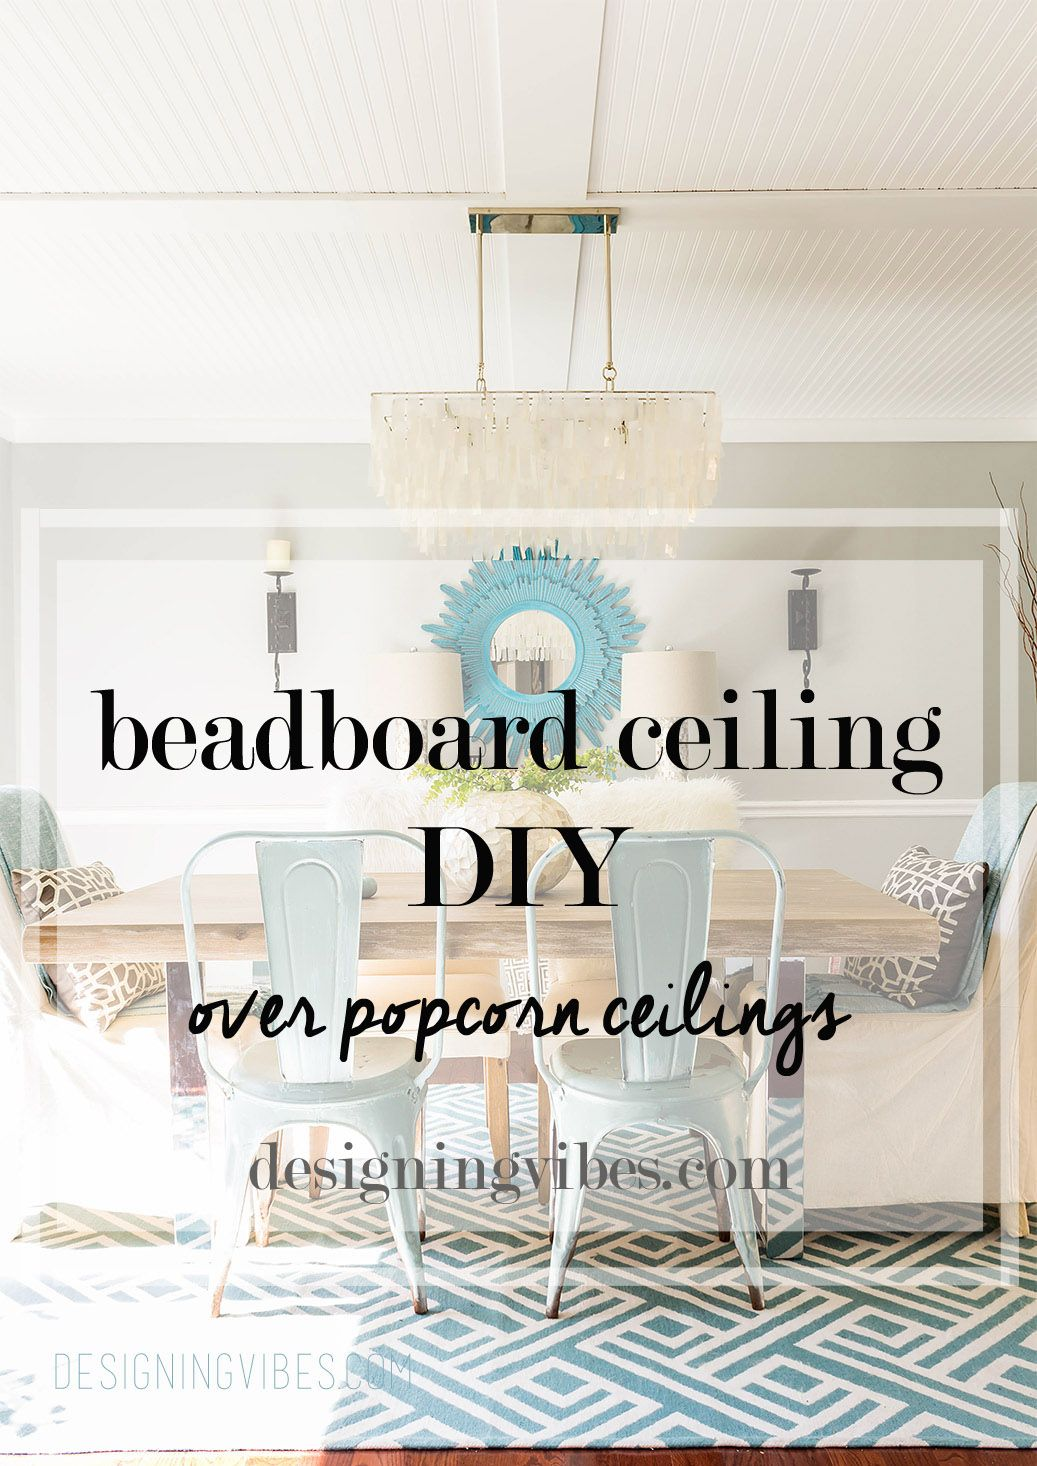 How to cover popcorn ceiling with beadboard planks diy tutorial how to cover popcorn ceiling with beadboard planks diy tutorial dailygadgetfo Choice Image